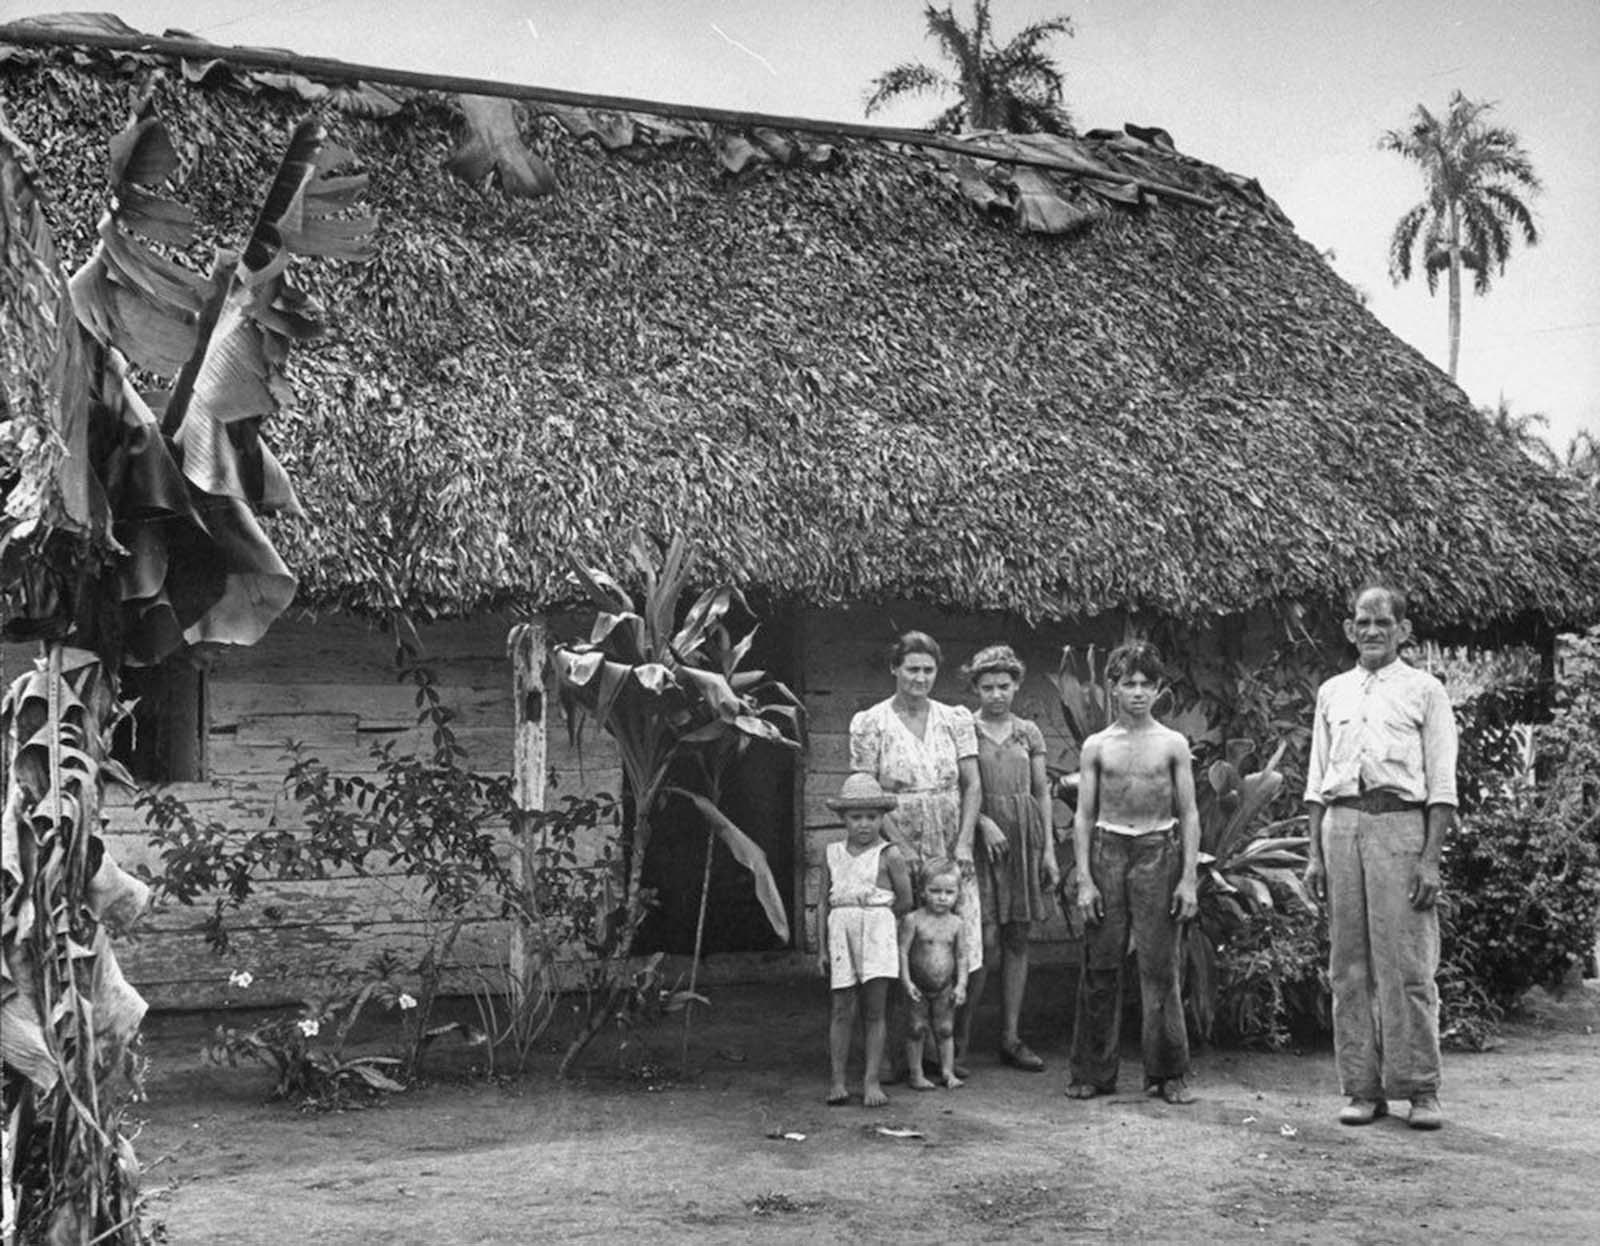 A cane cutter and his family standing in front of their home. 1944.